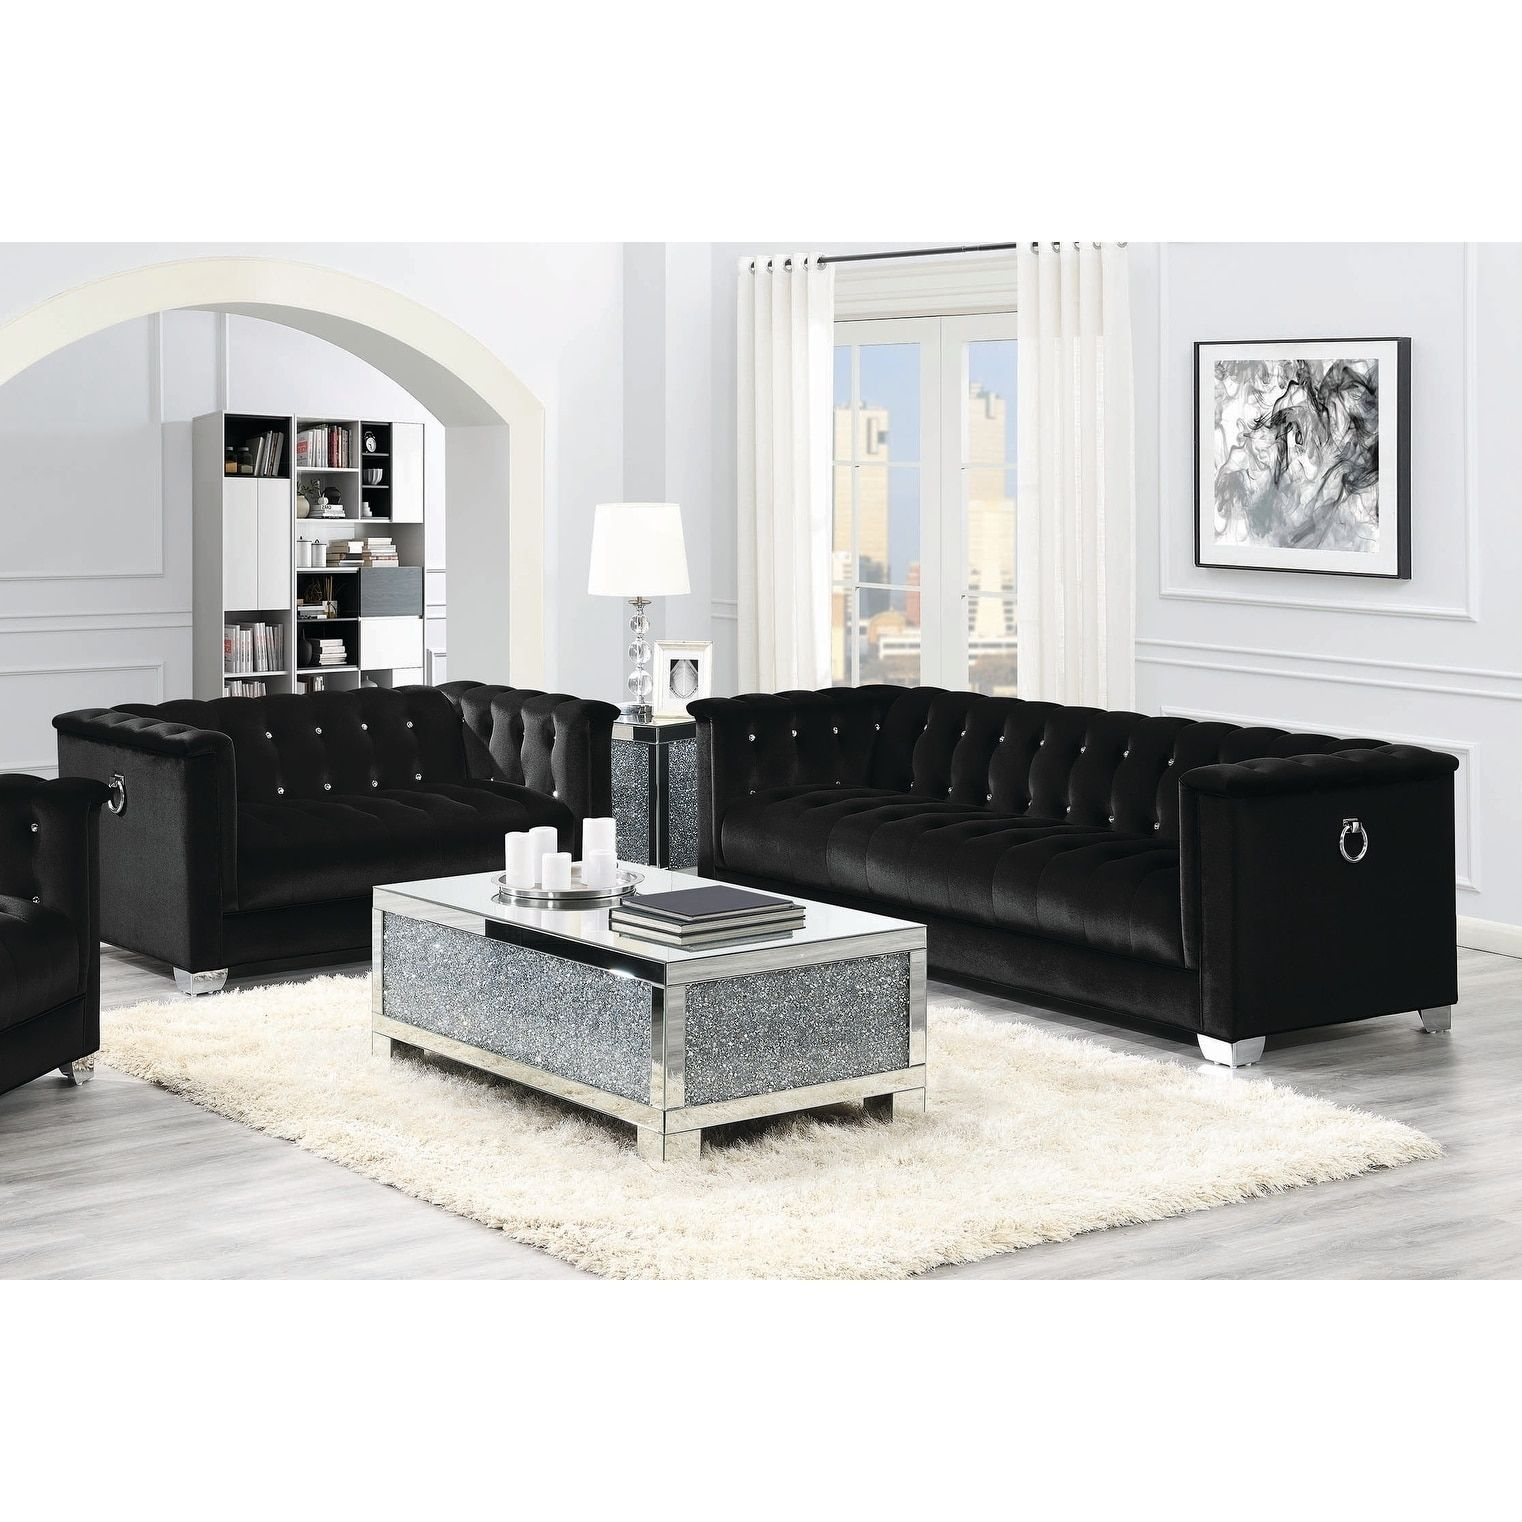 Outstanding Strick Bolton La Rose Black 2 Piece Living Room Set Onthecornerstone Fun Painted Chair Ideas Images Onthecornerstoneorg